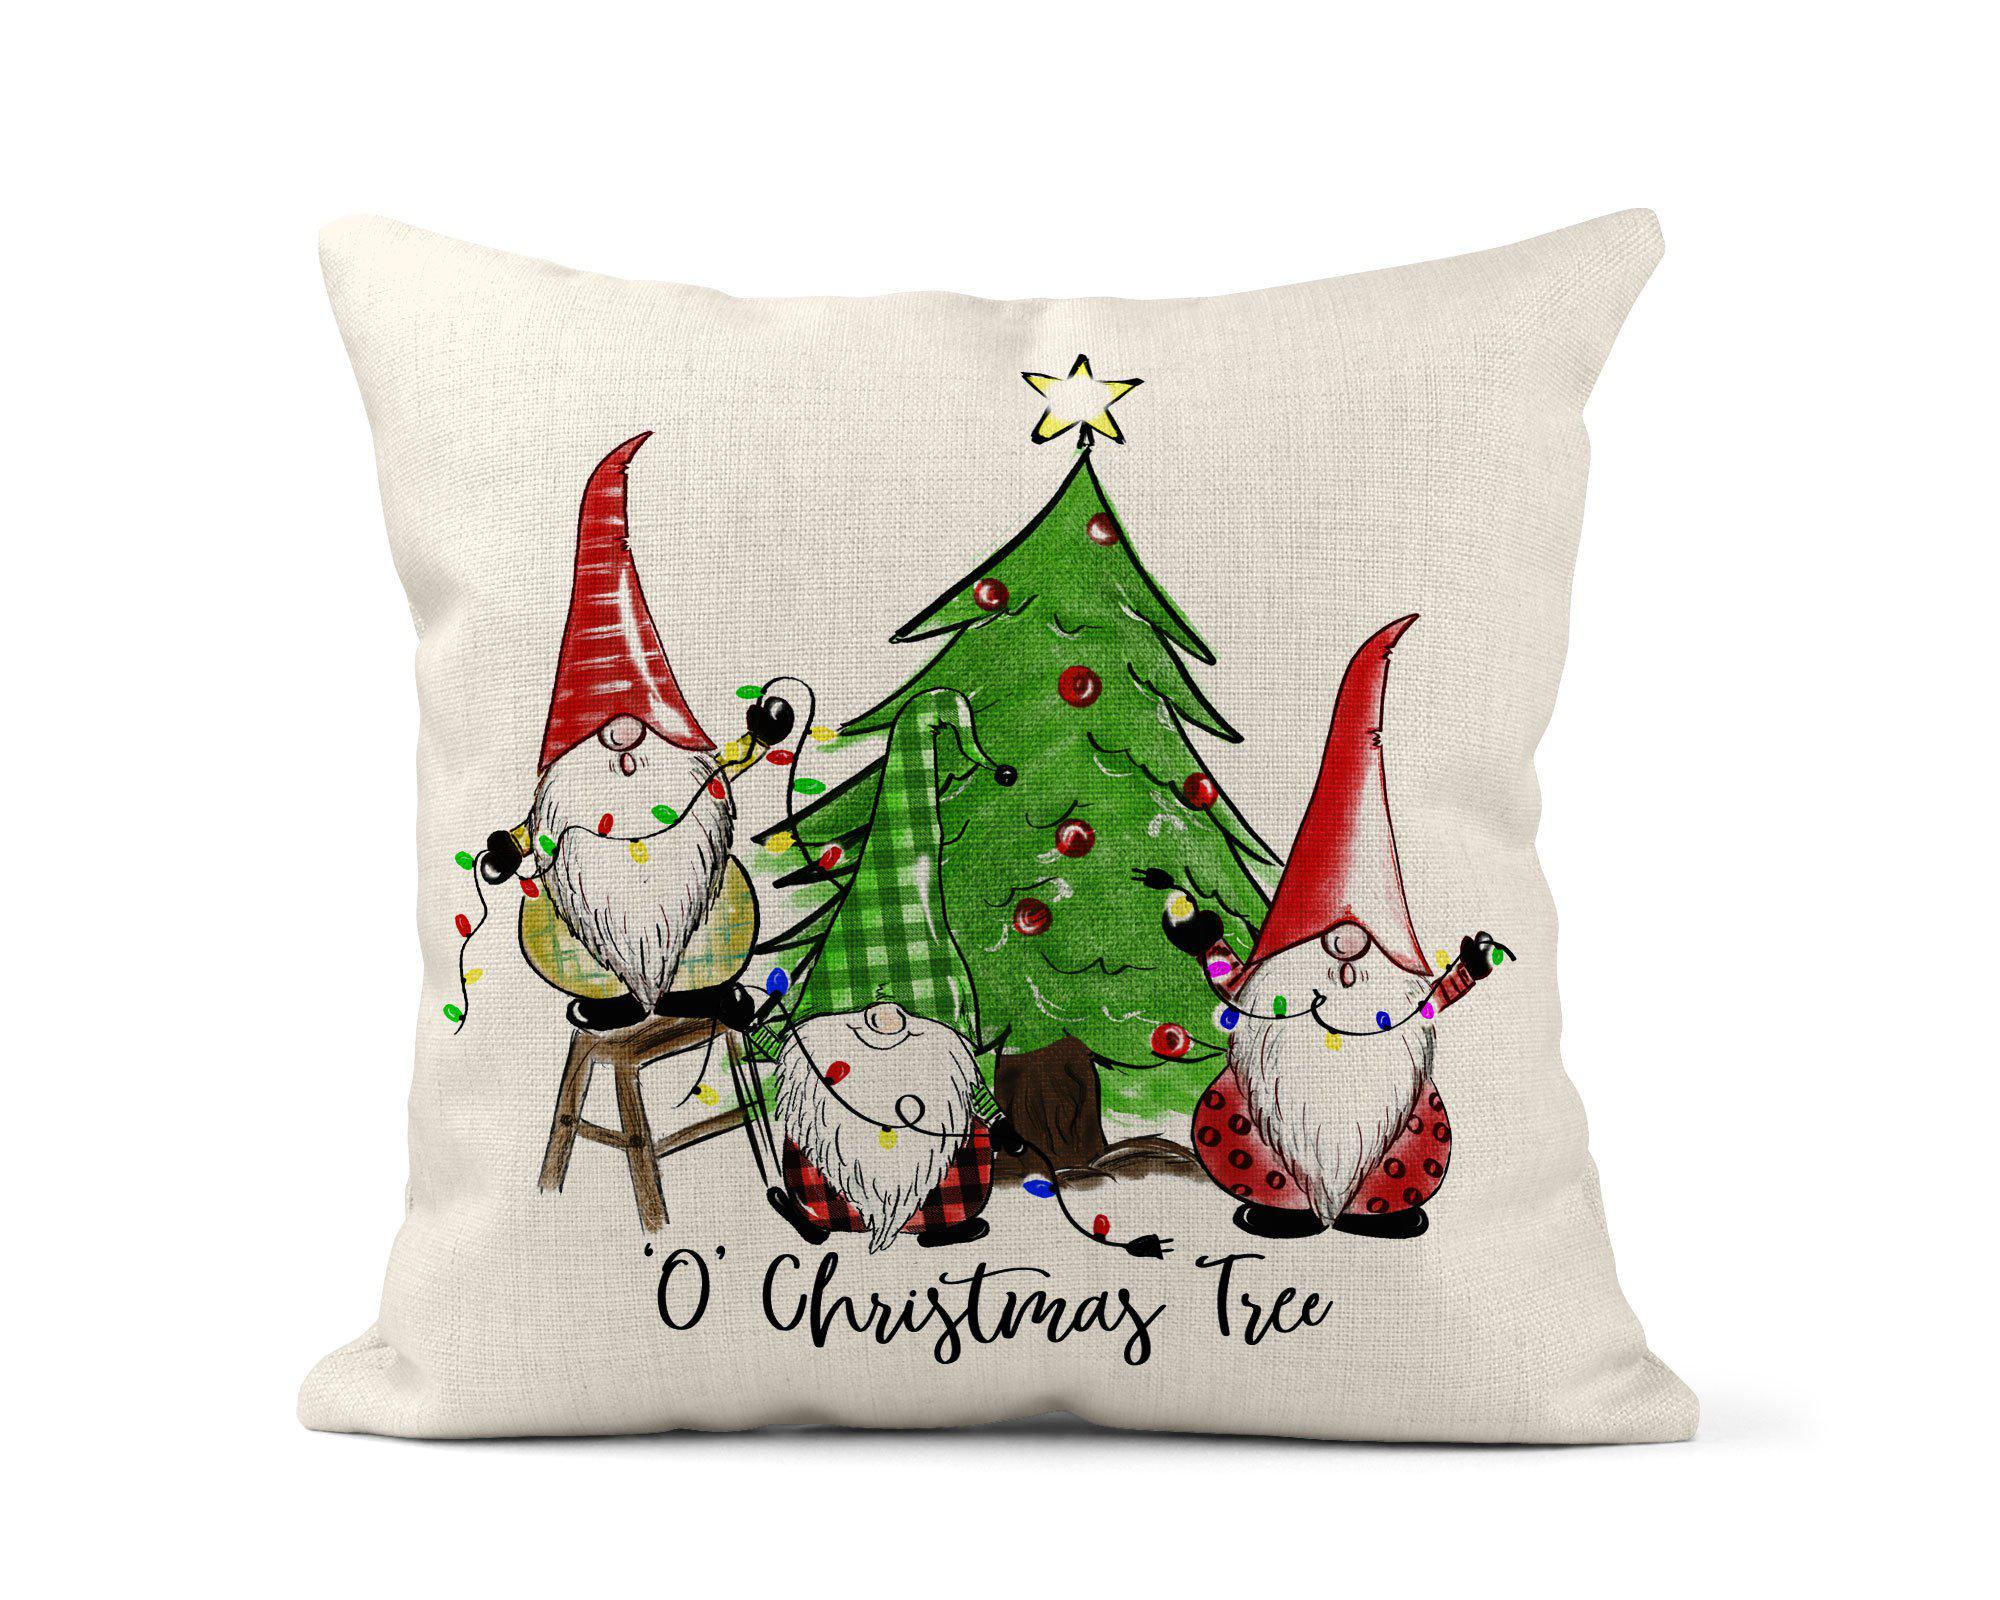 Christmas Gnome Throw Pillow-Home Decor-Maddie & Co.